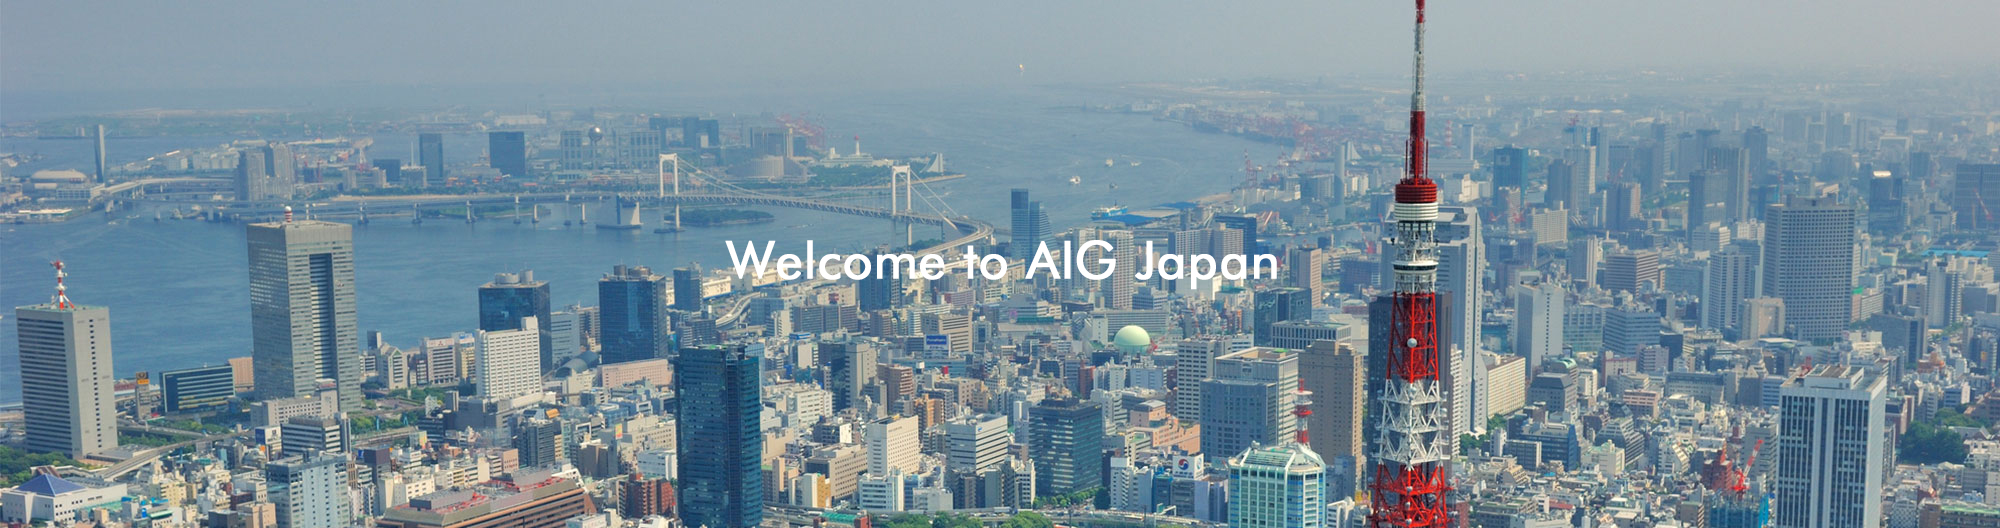 Welcome to AIG Japan